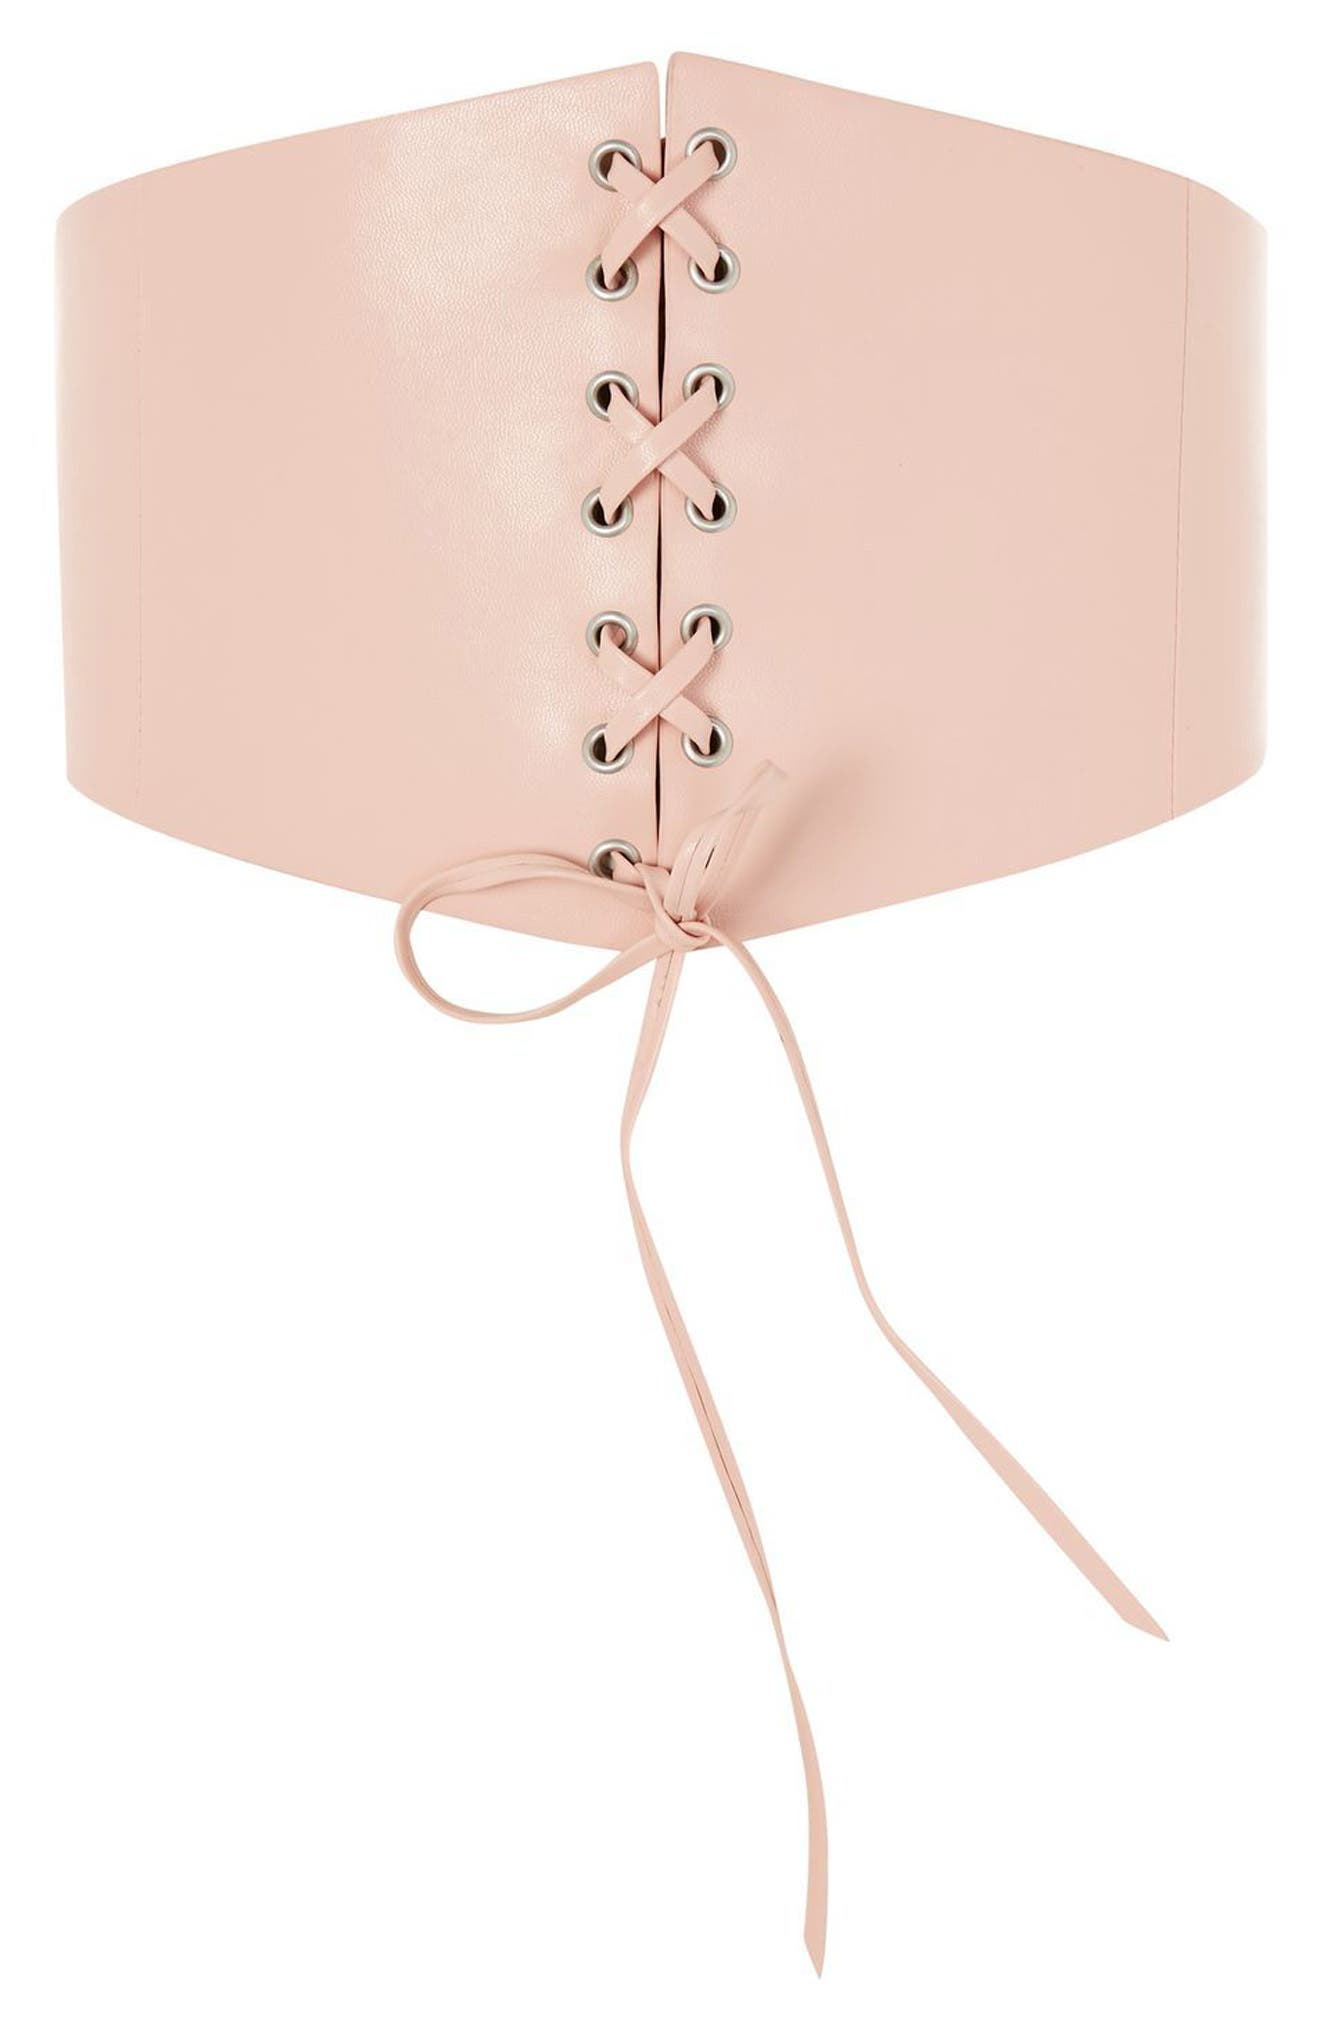 Topshop Lace-Up Faux Leather Corset